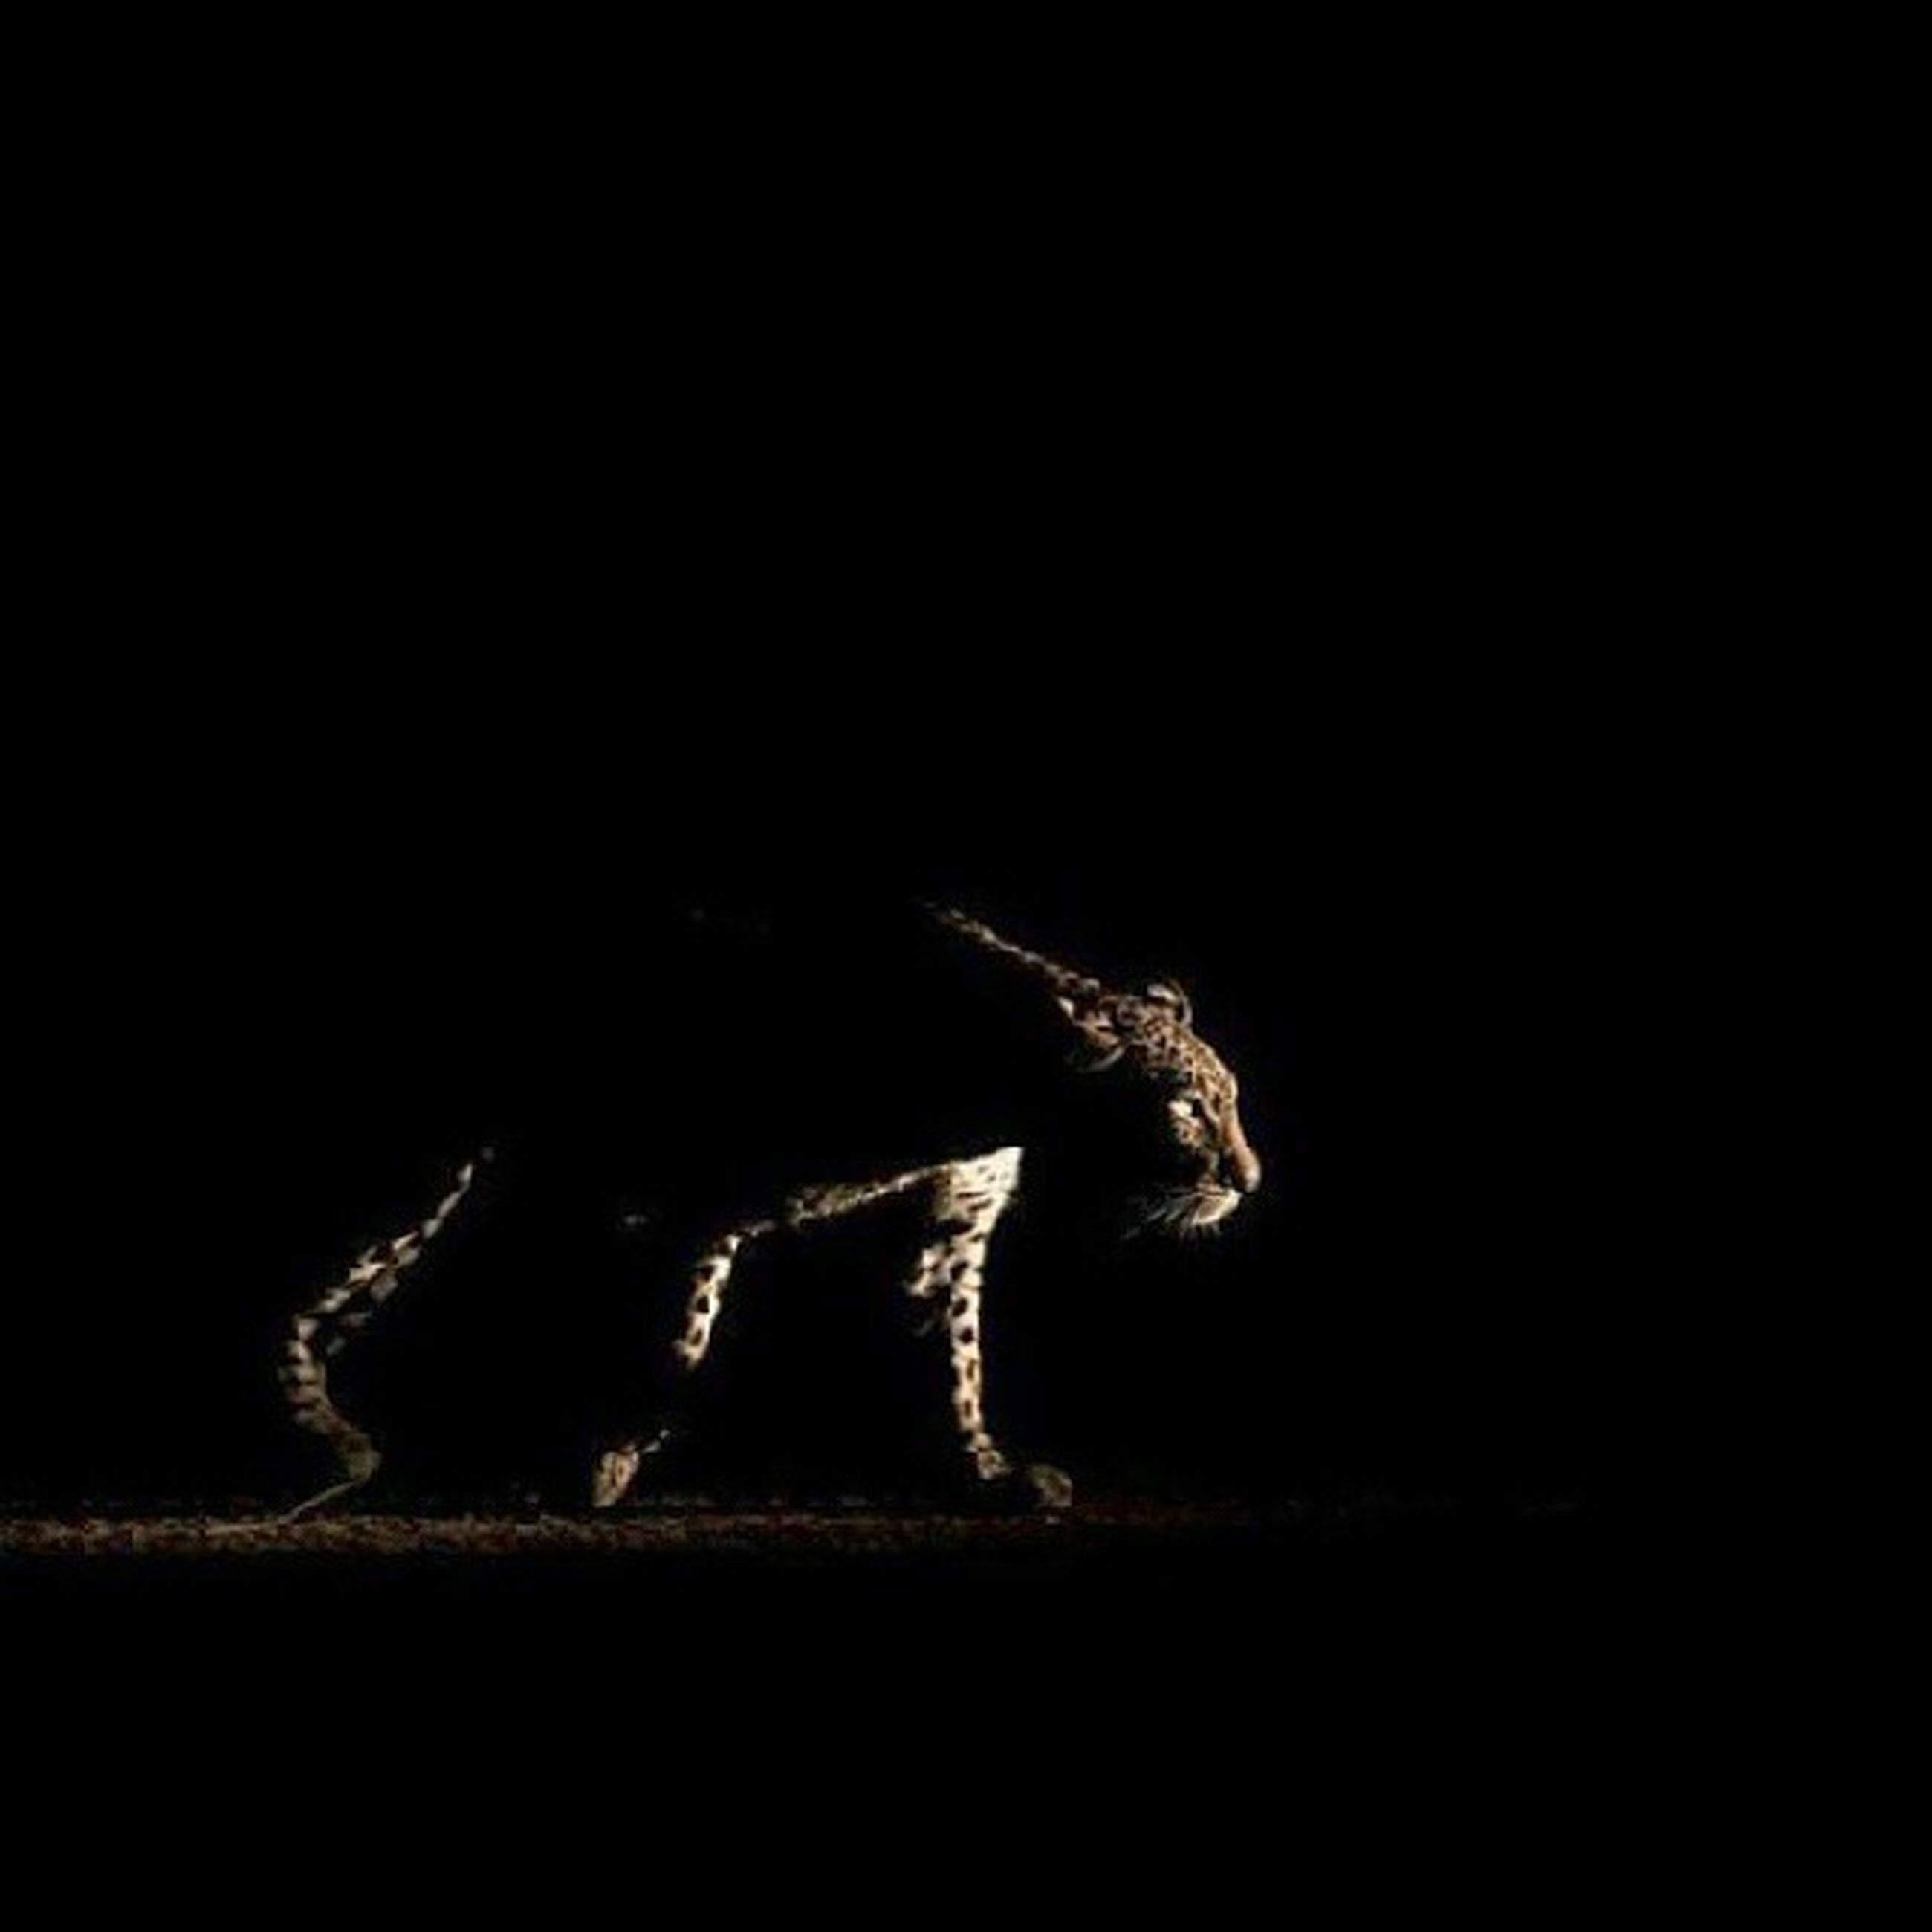 one animal, animal themes, night, copy space, black background, studio shot, wildlife, dark, mammal, animals in the wild, side view, no people, animal head, animal body part, close-up, black color, domestic animals, nature, zoology, shadow